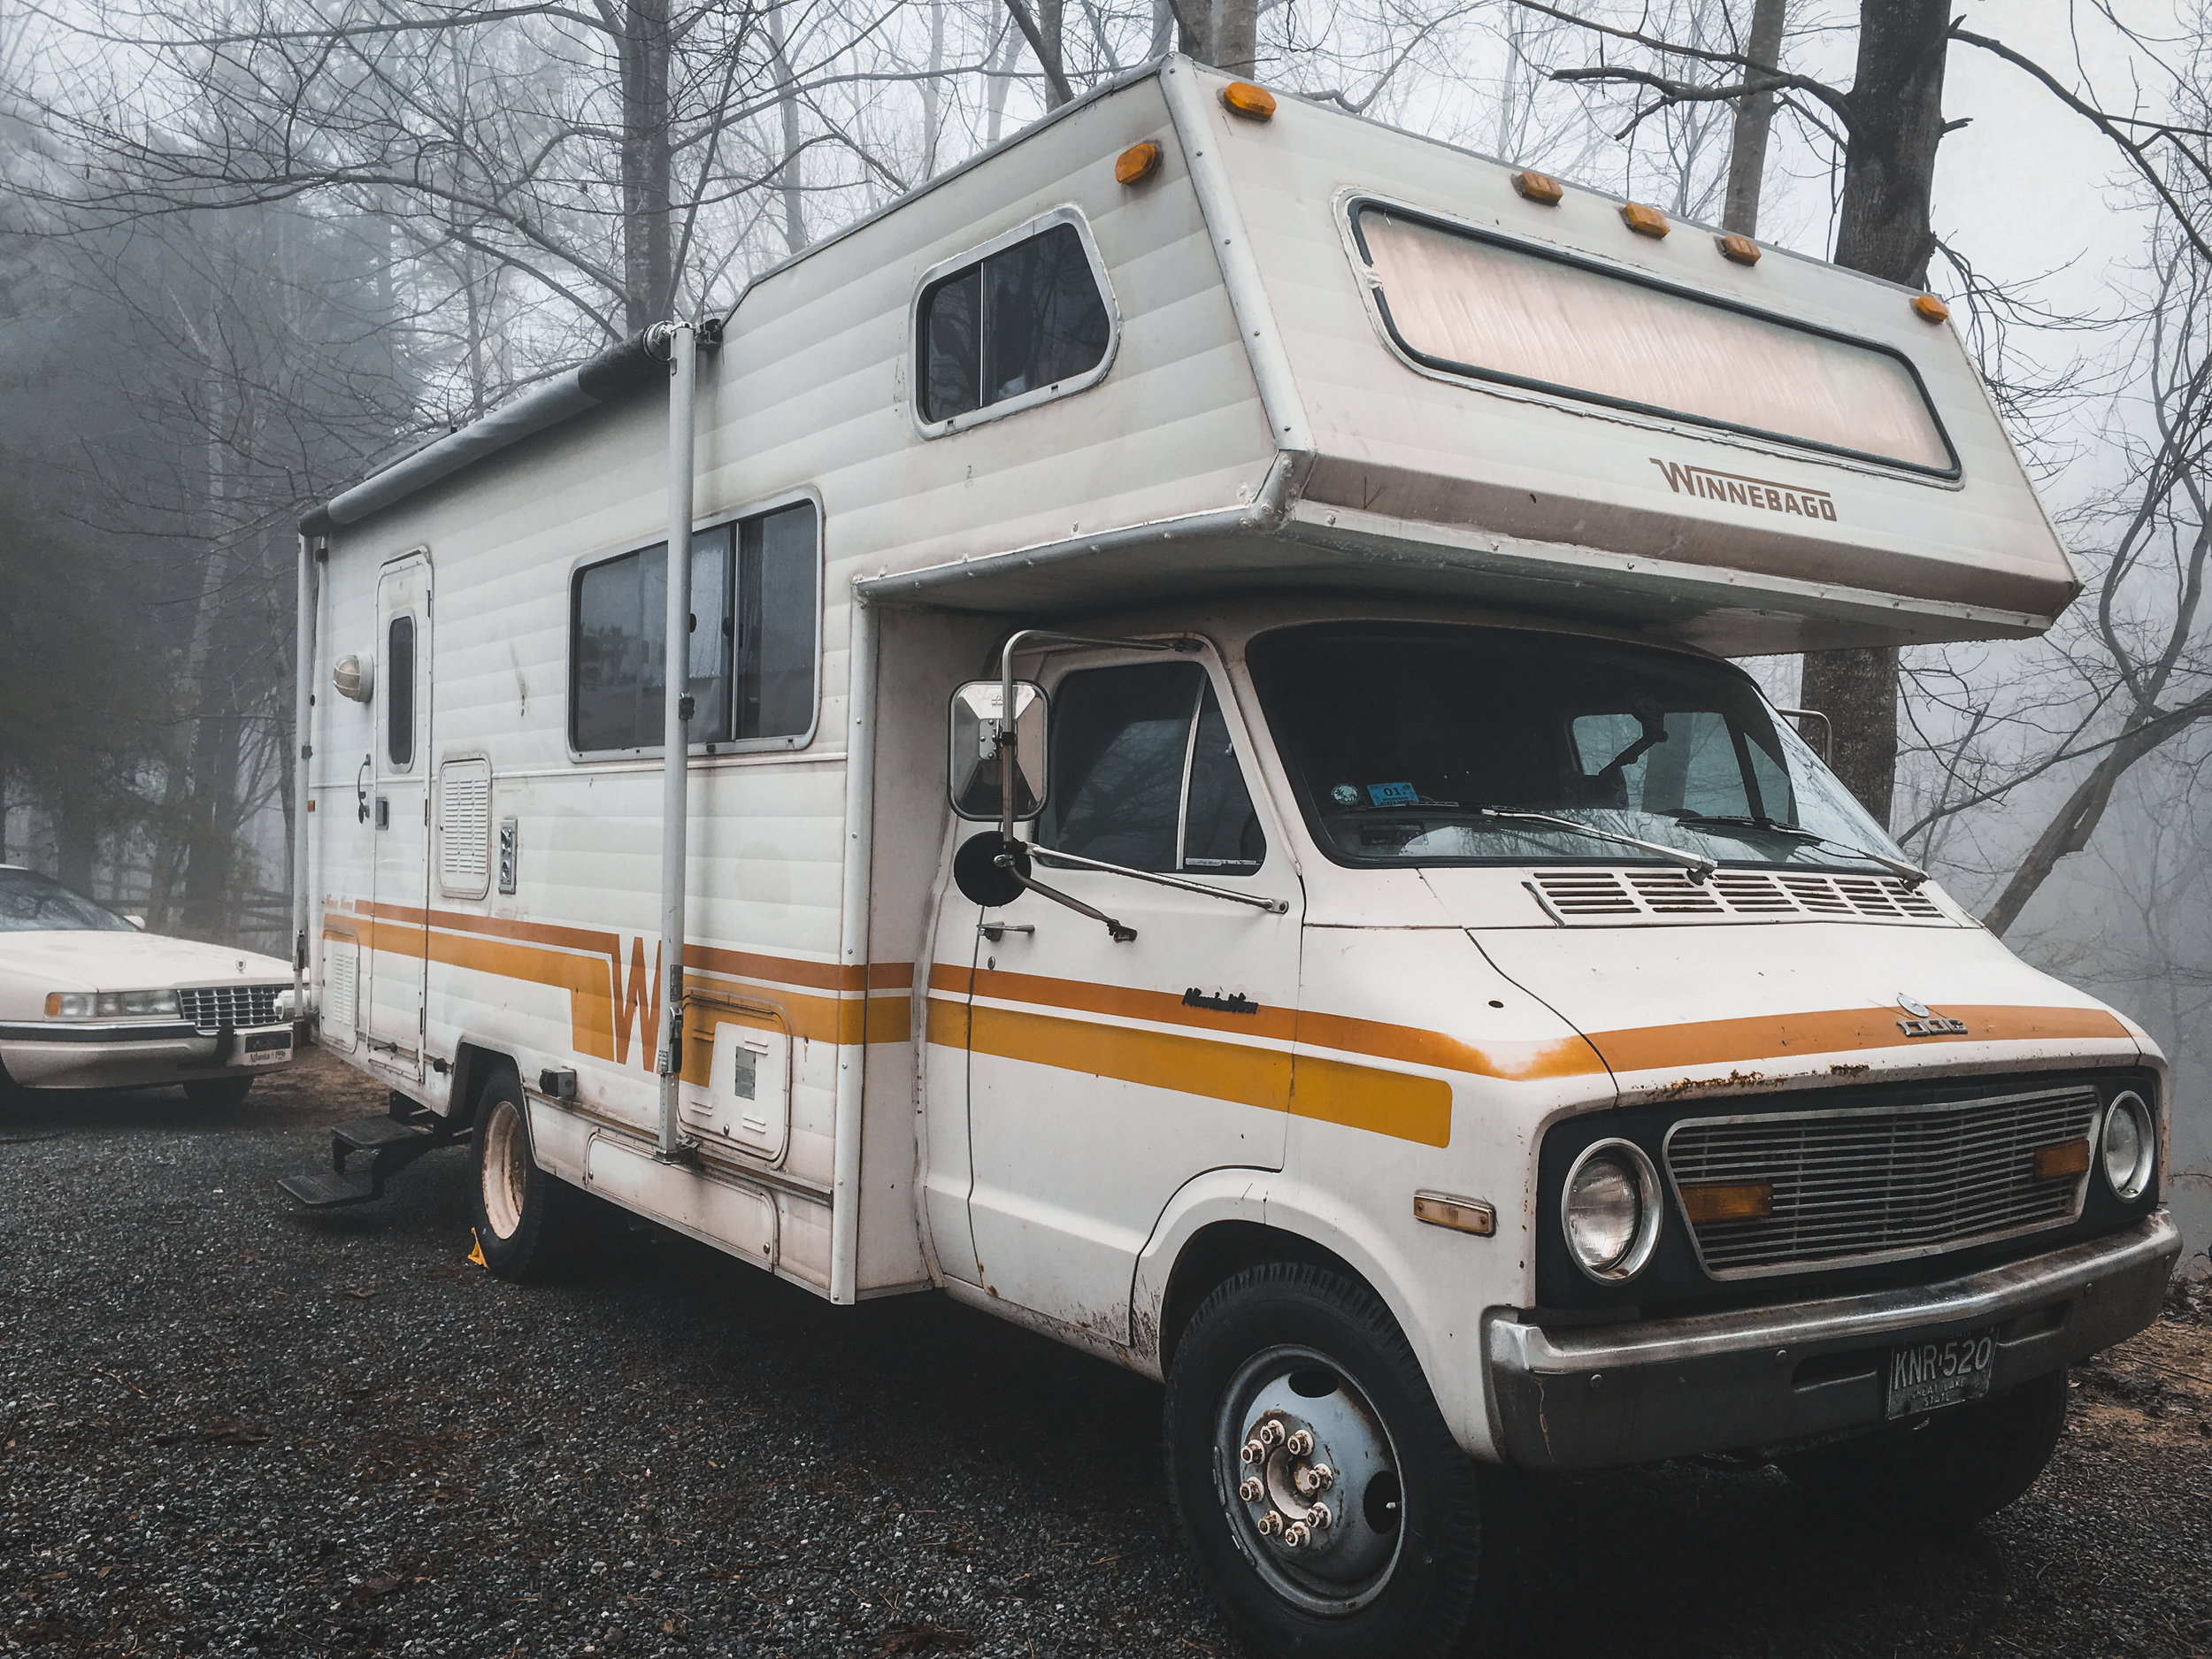 hillbilly hilton - We drive a 1977 Winnebago. We actually adopted the existing name. It's on the back of our home on wheels. It seems like someone tried to remove the name years ago (we can tell from all the scrape marks) and upon seeing their failure and ultimate despair, we decided to just leave it be. We also asked our friends and family on Facebook with a poll between Hillbilly Hilton and The Dog (which is on the front of the car) and the overwhelming majority voted on HH!